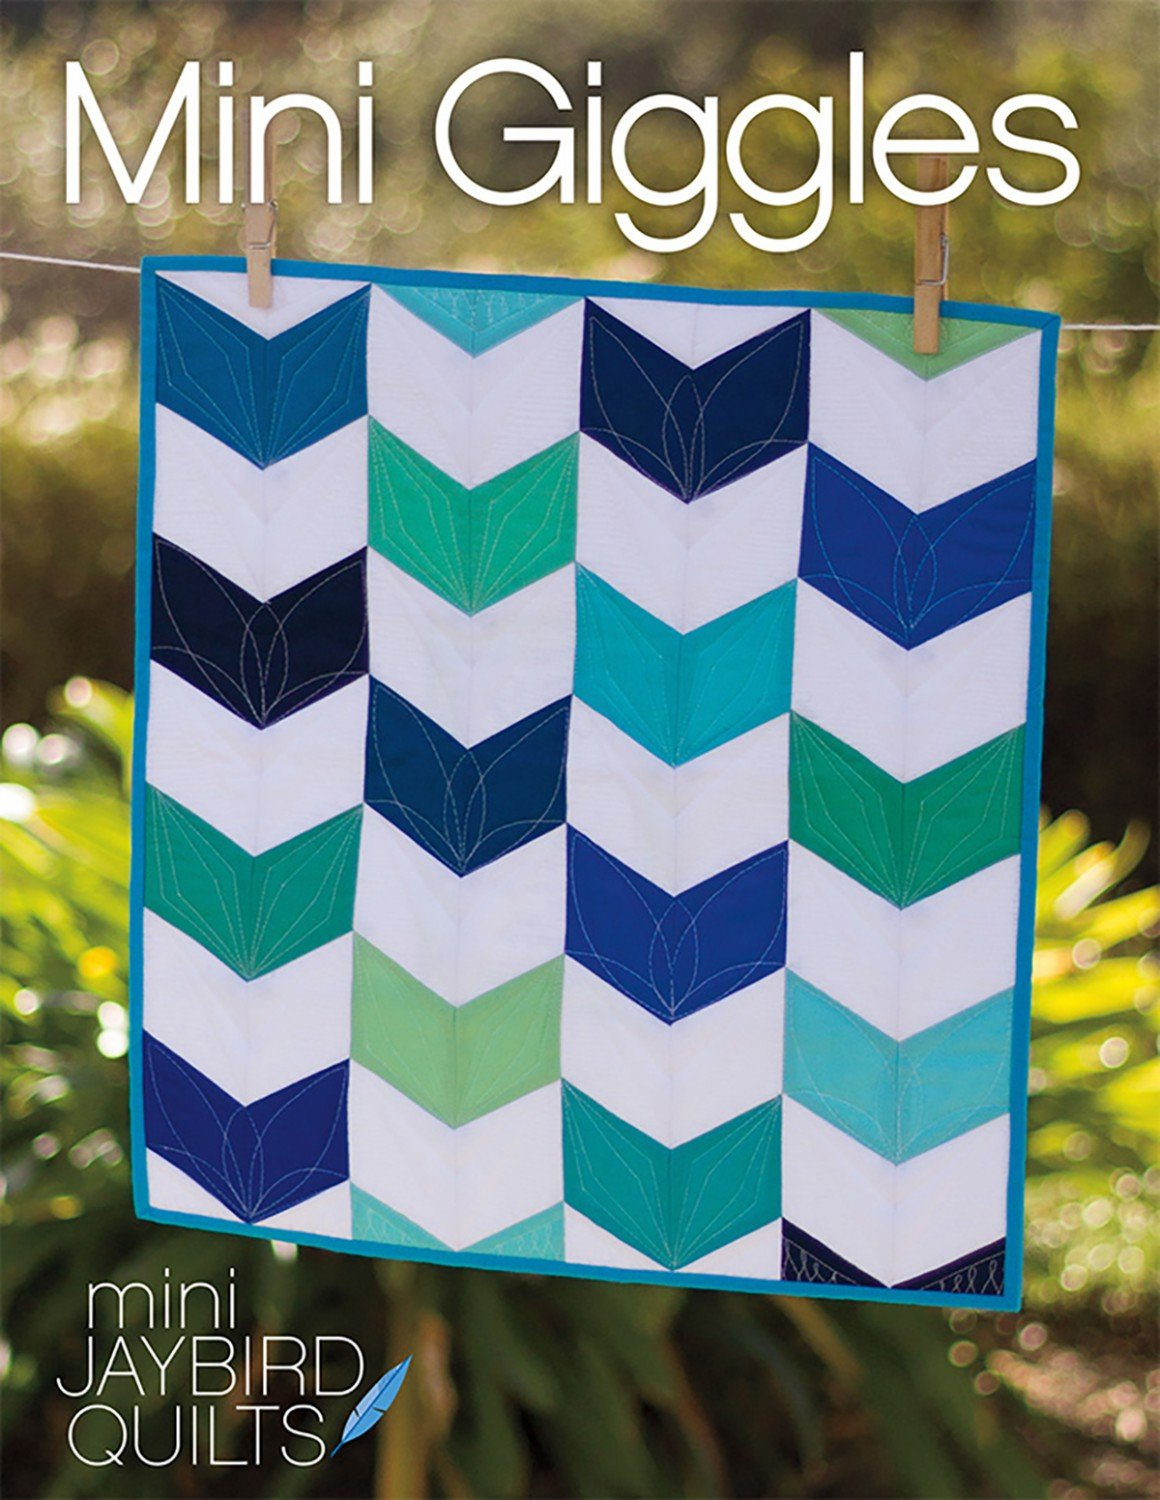 Mini Giggles Jaybird Quilts